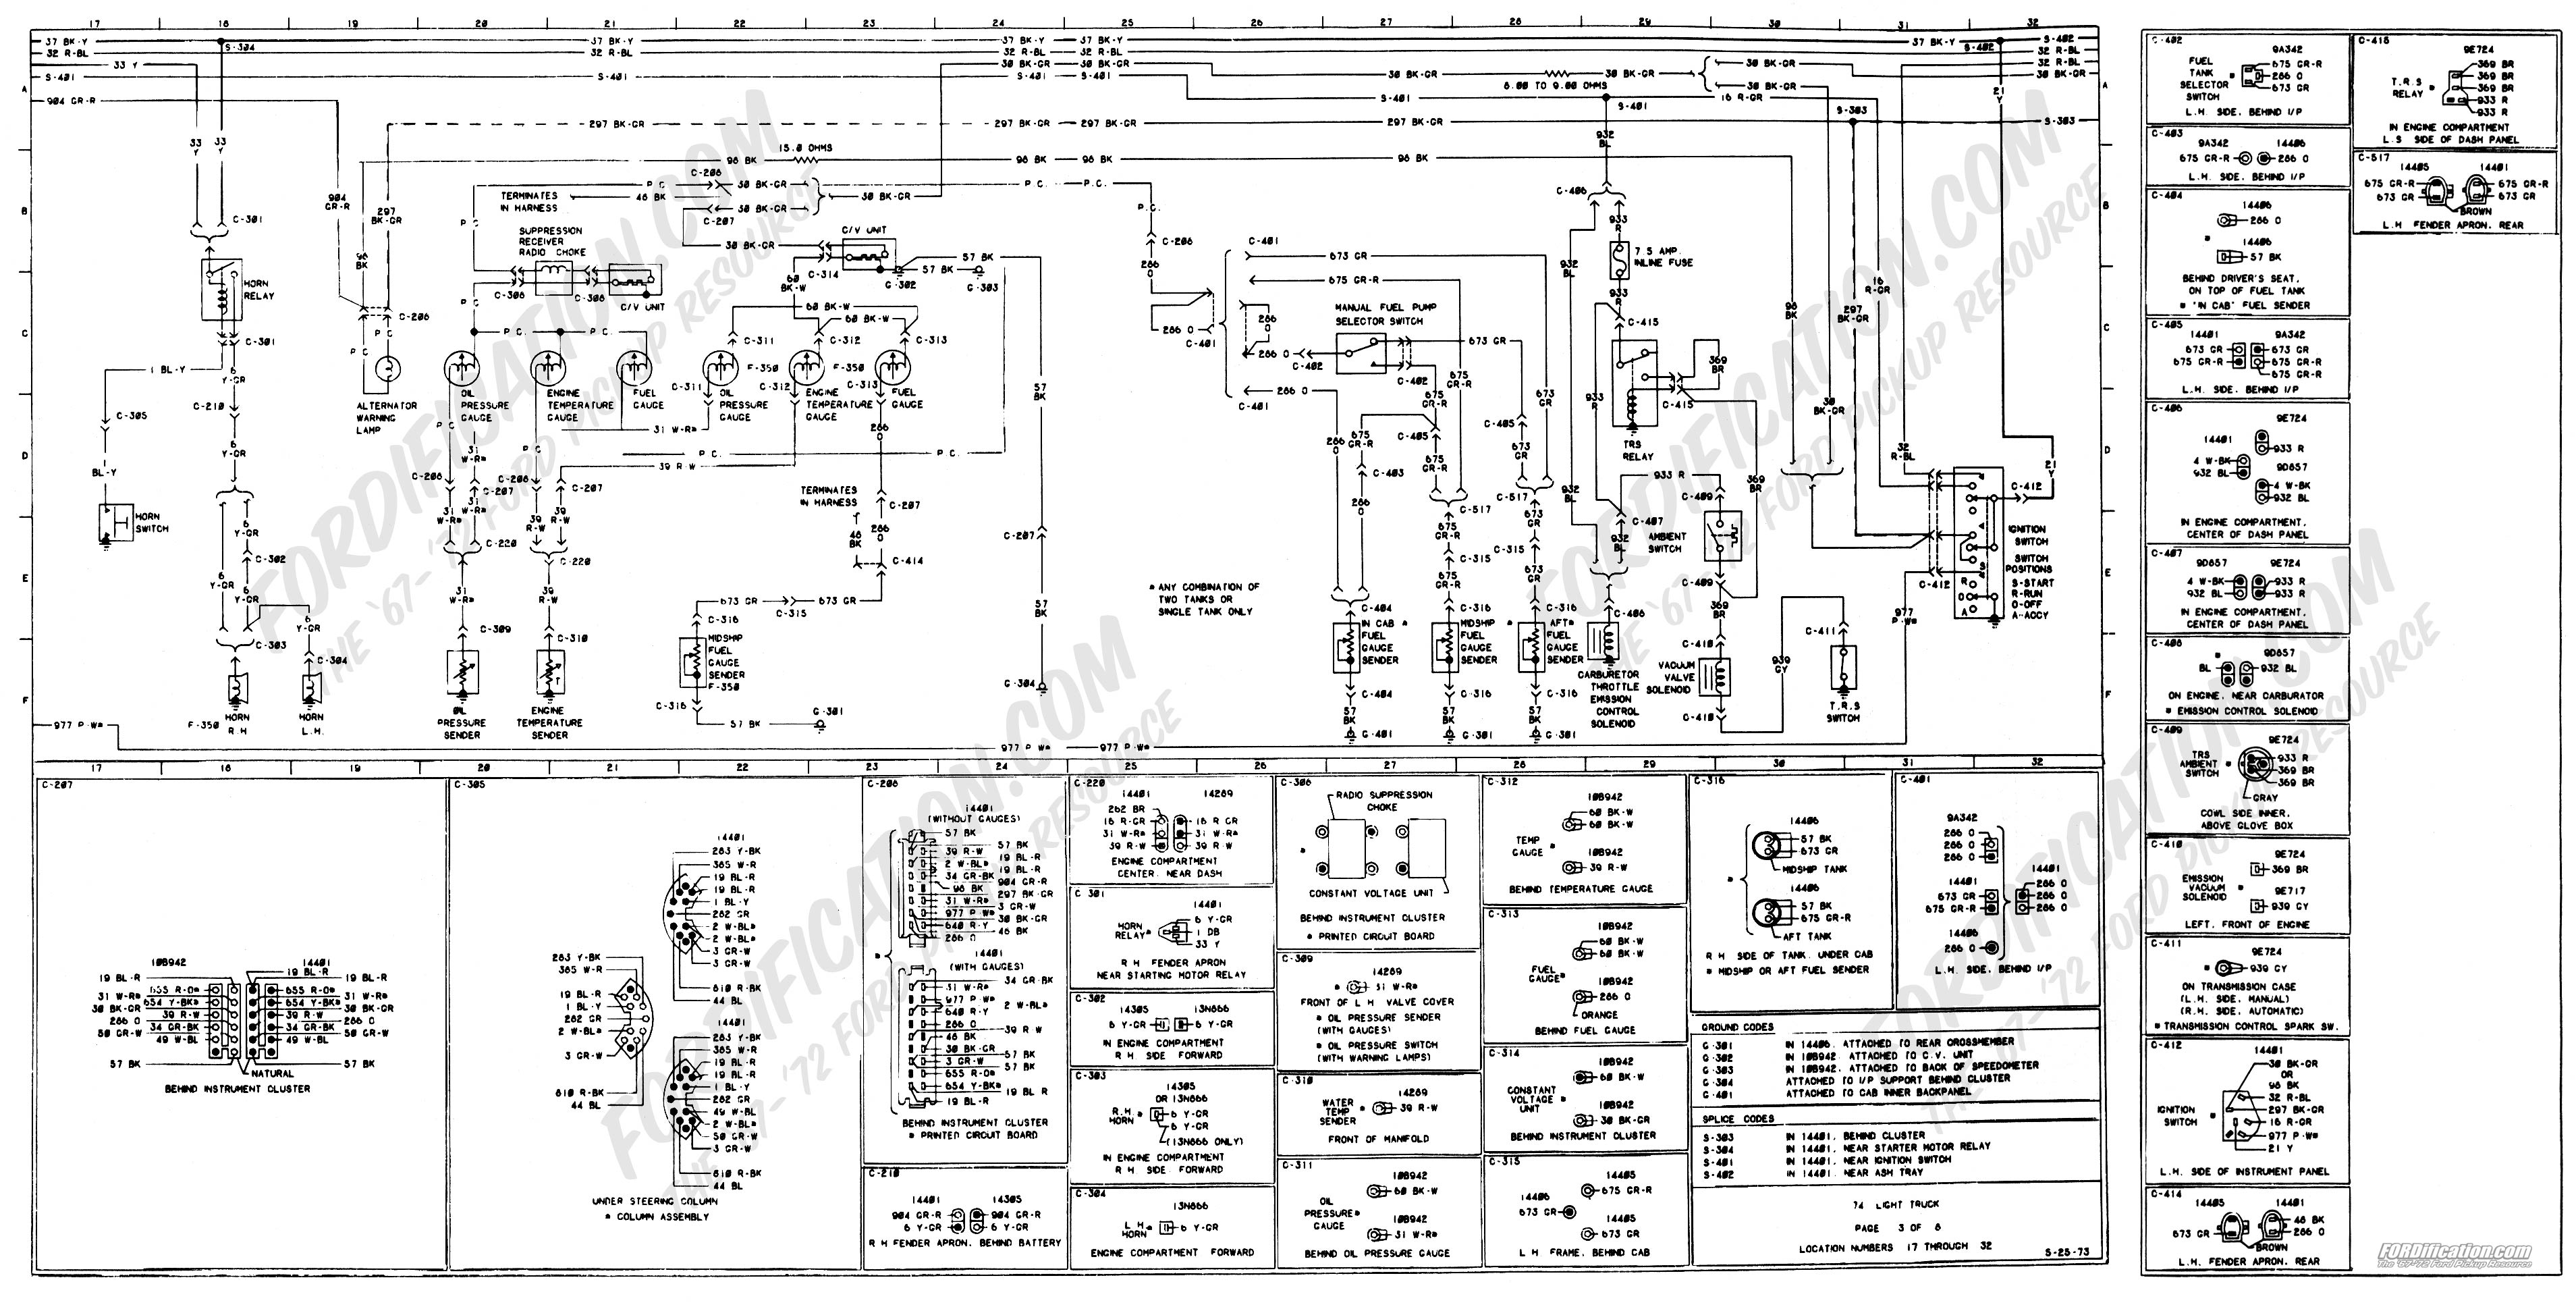 1999 Ford V10 Engine Diagram Reinvent Your Wiring 3 Valve 1973 F 250 Detailed Schematics Rh Keyplusrubber Com